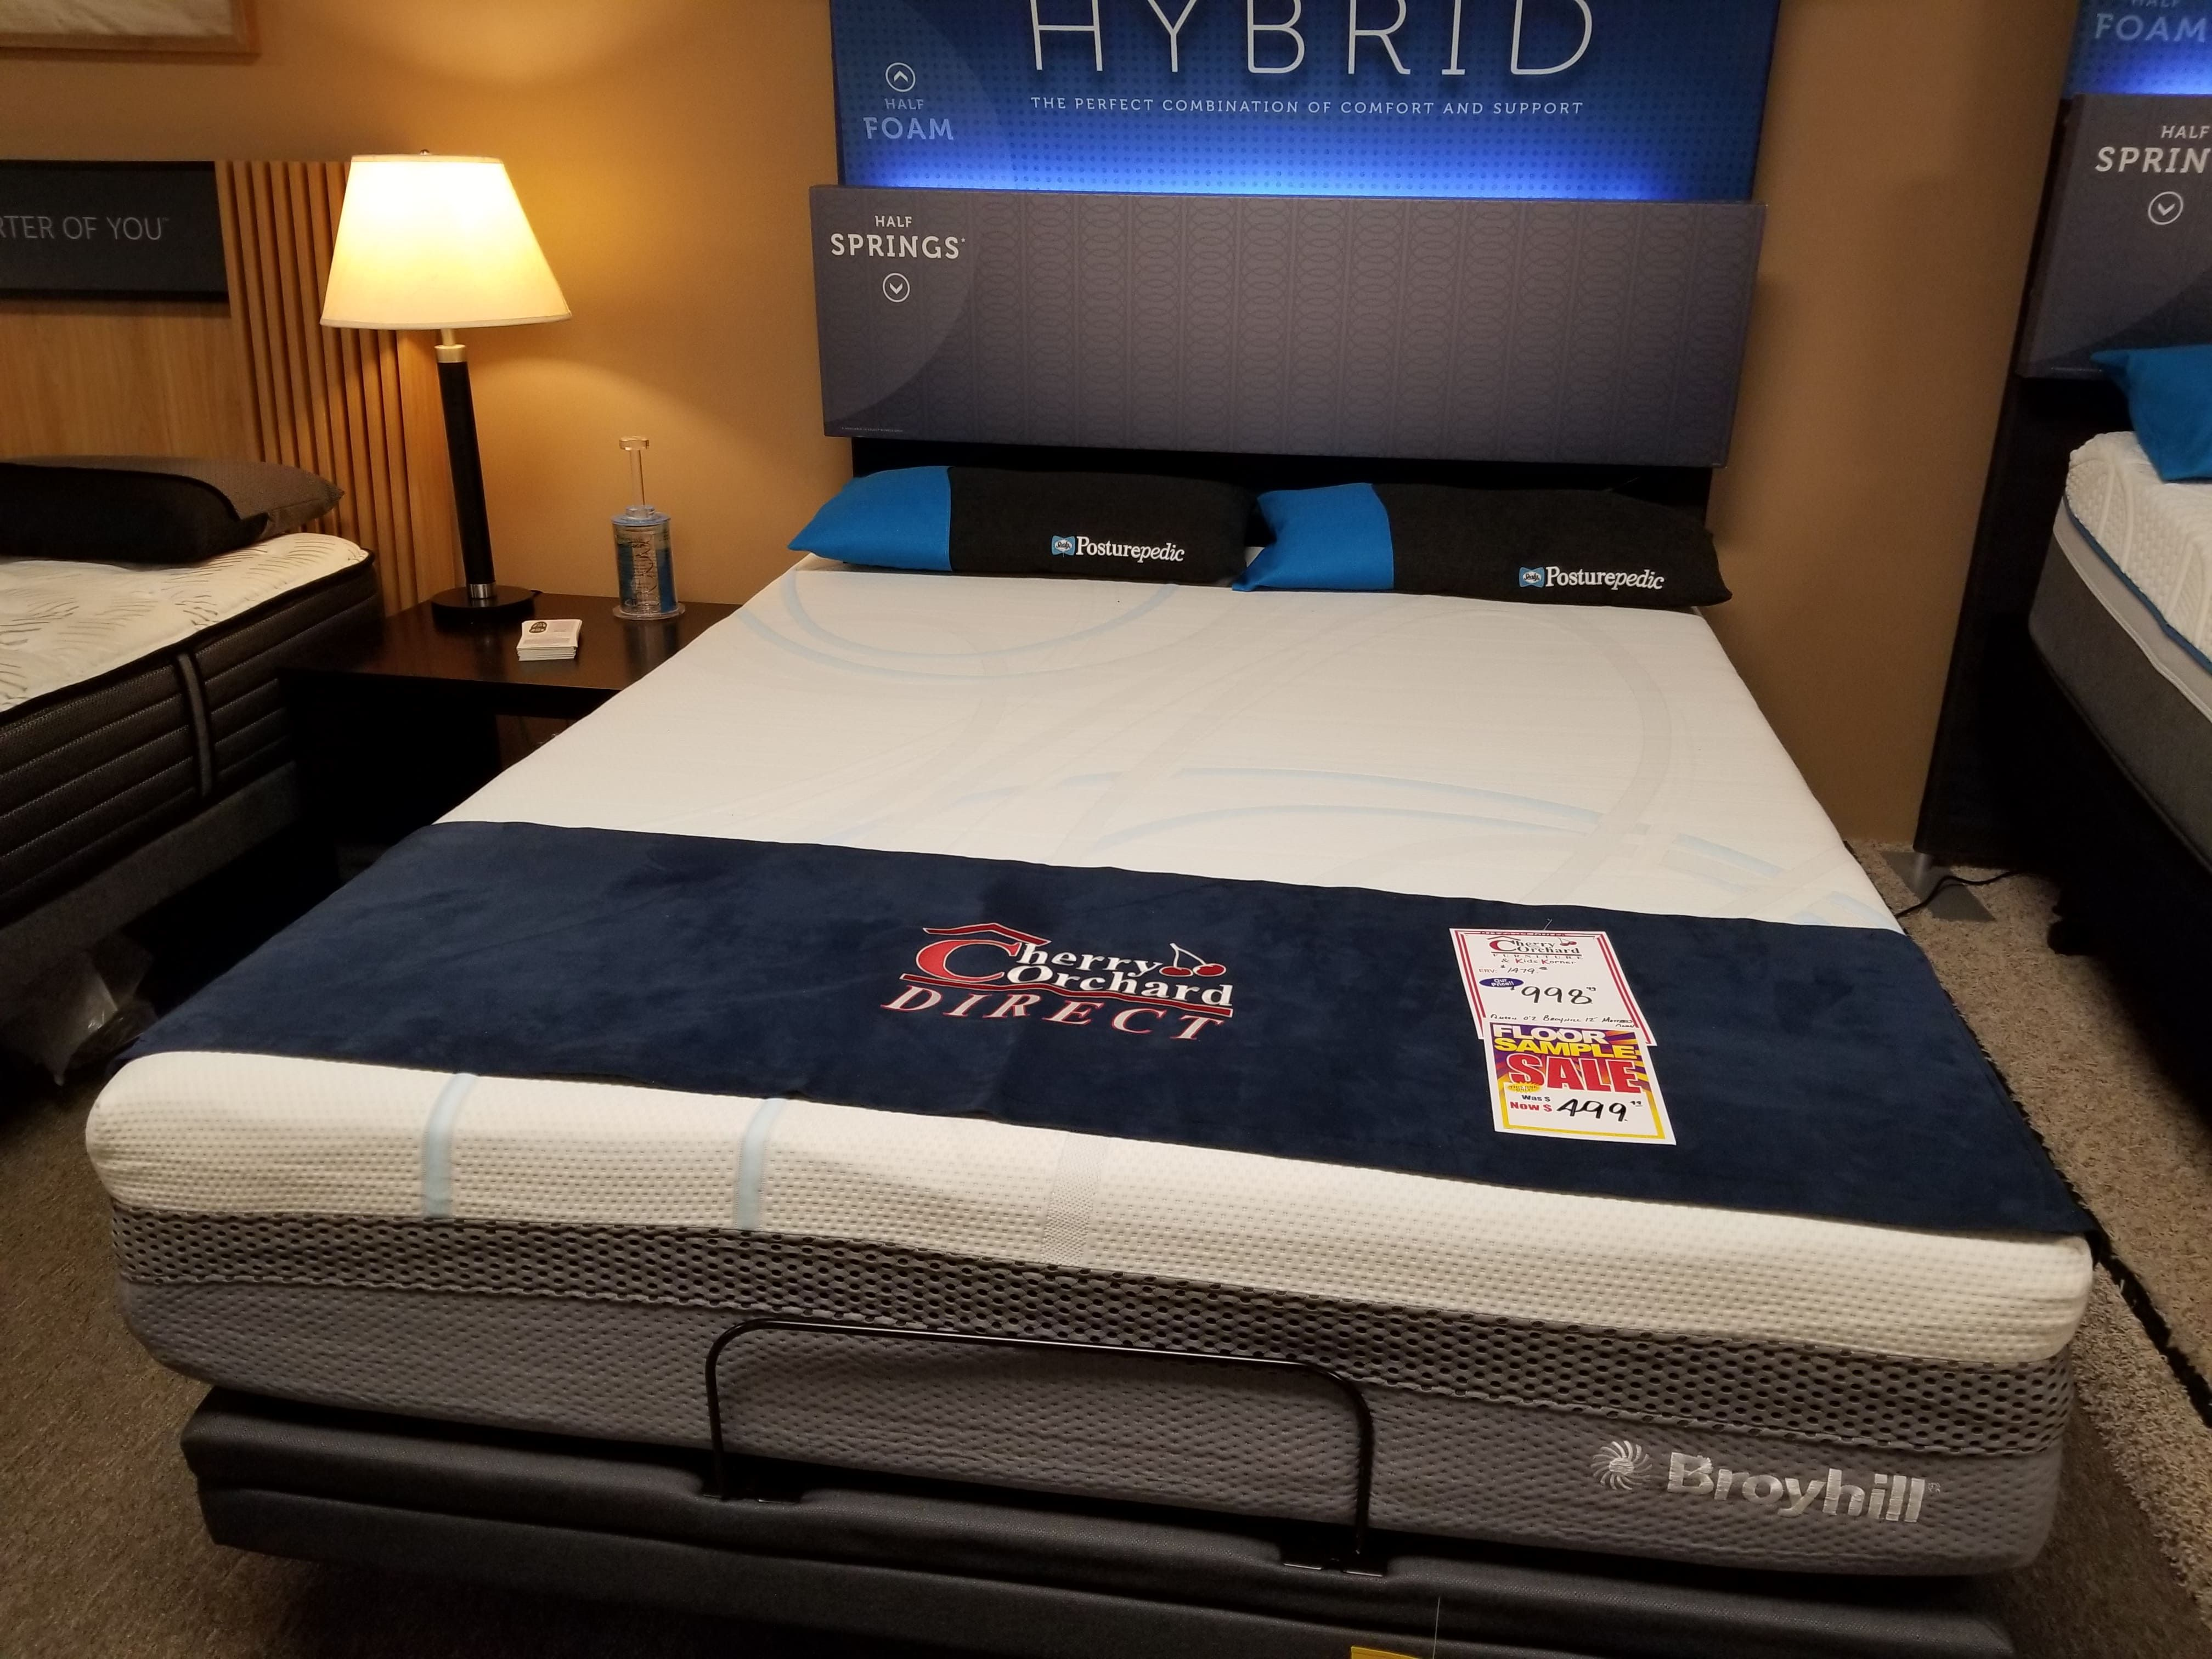 998 Reduced To 499 Huge Floor Model Clearance On This High End Broyhill Hybrid Mattress Many Floor Models To Childrens Furniture Hybrid Mattress Broyhill